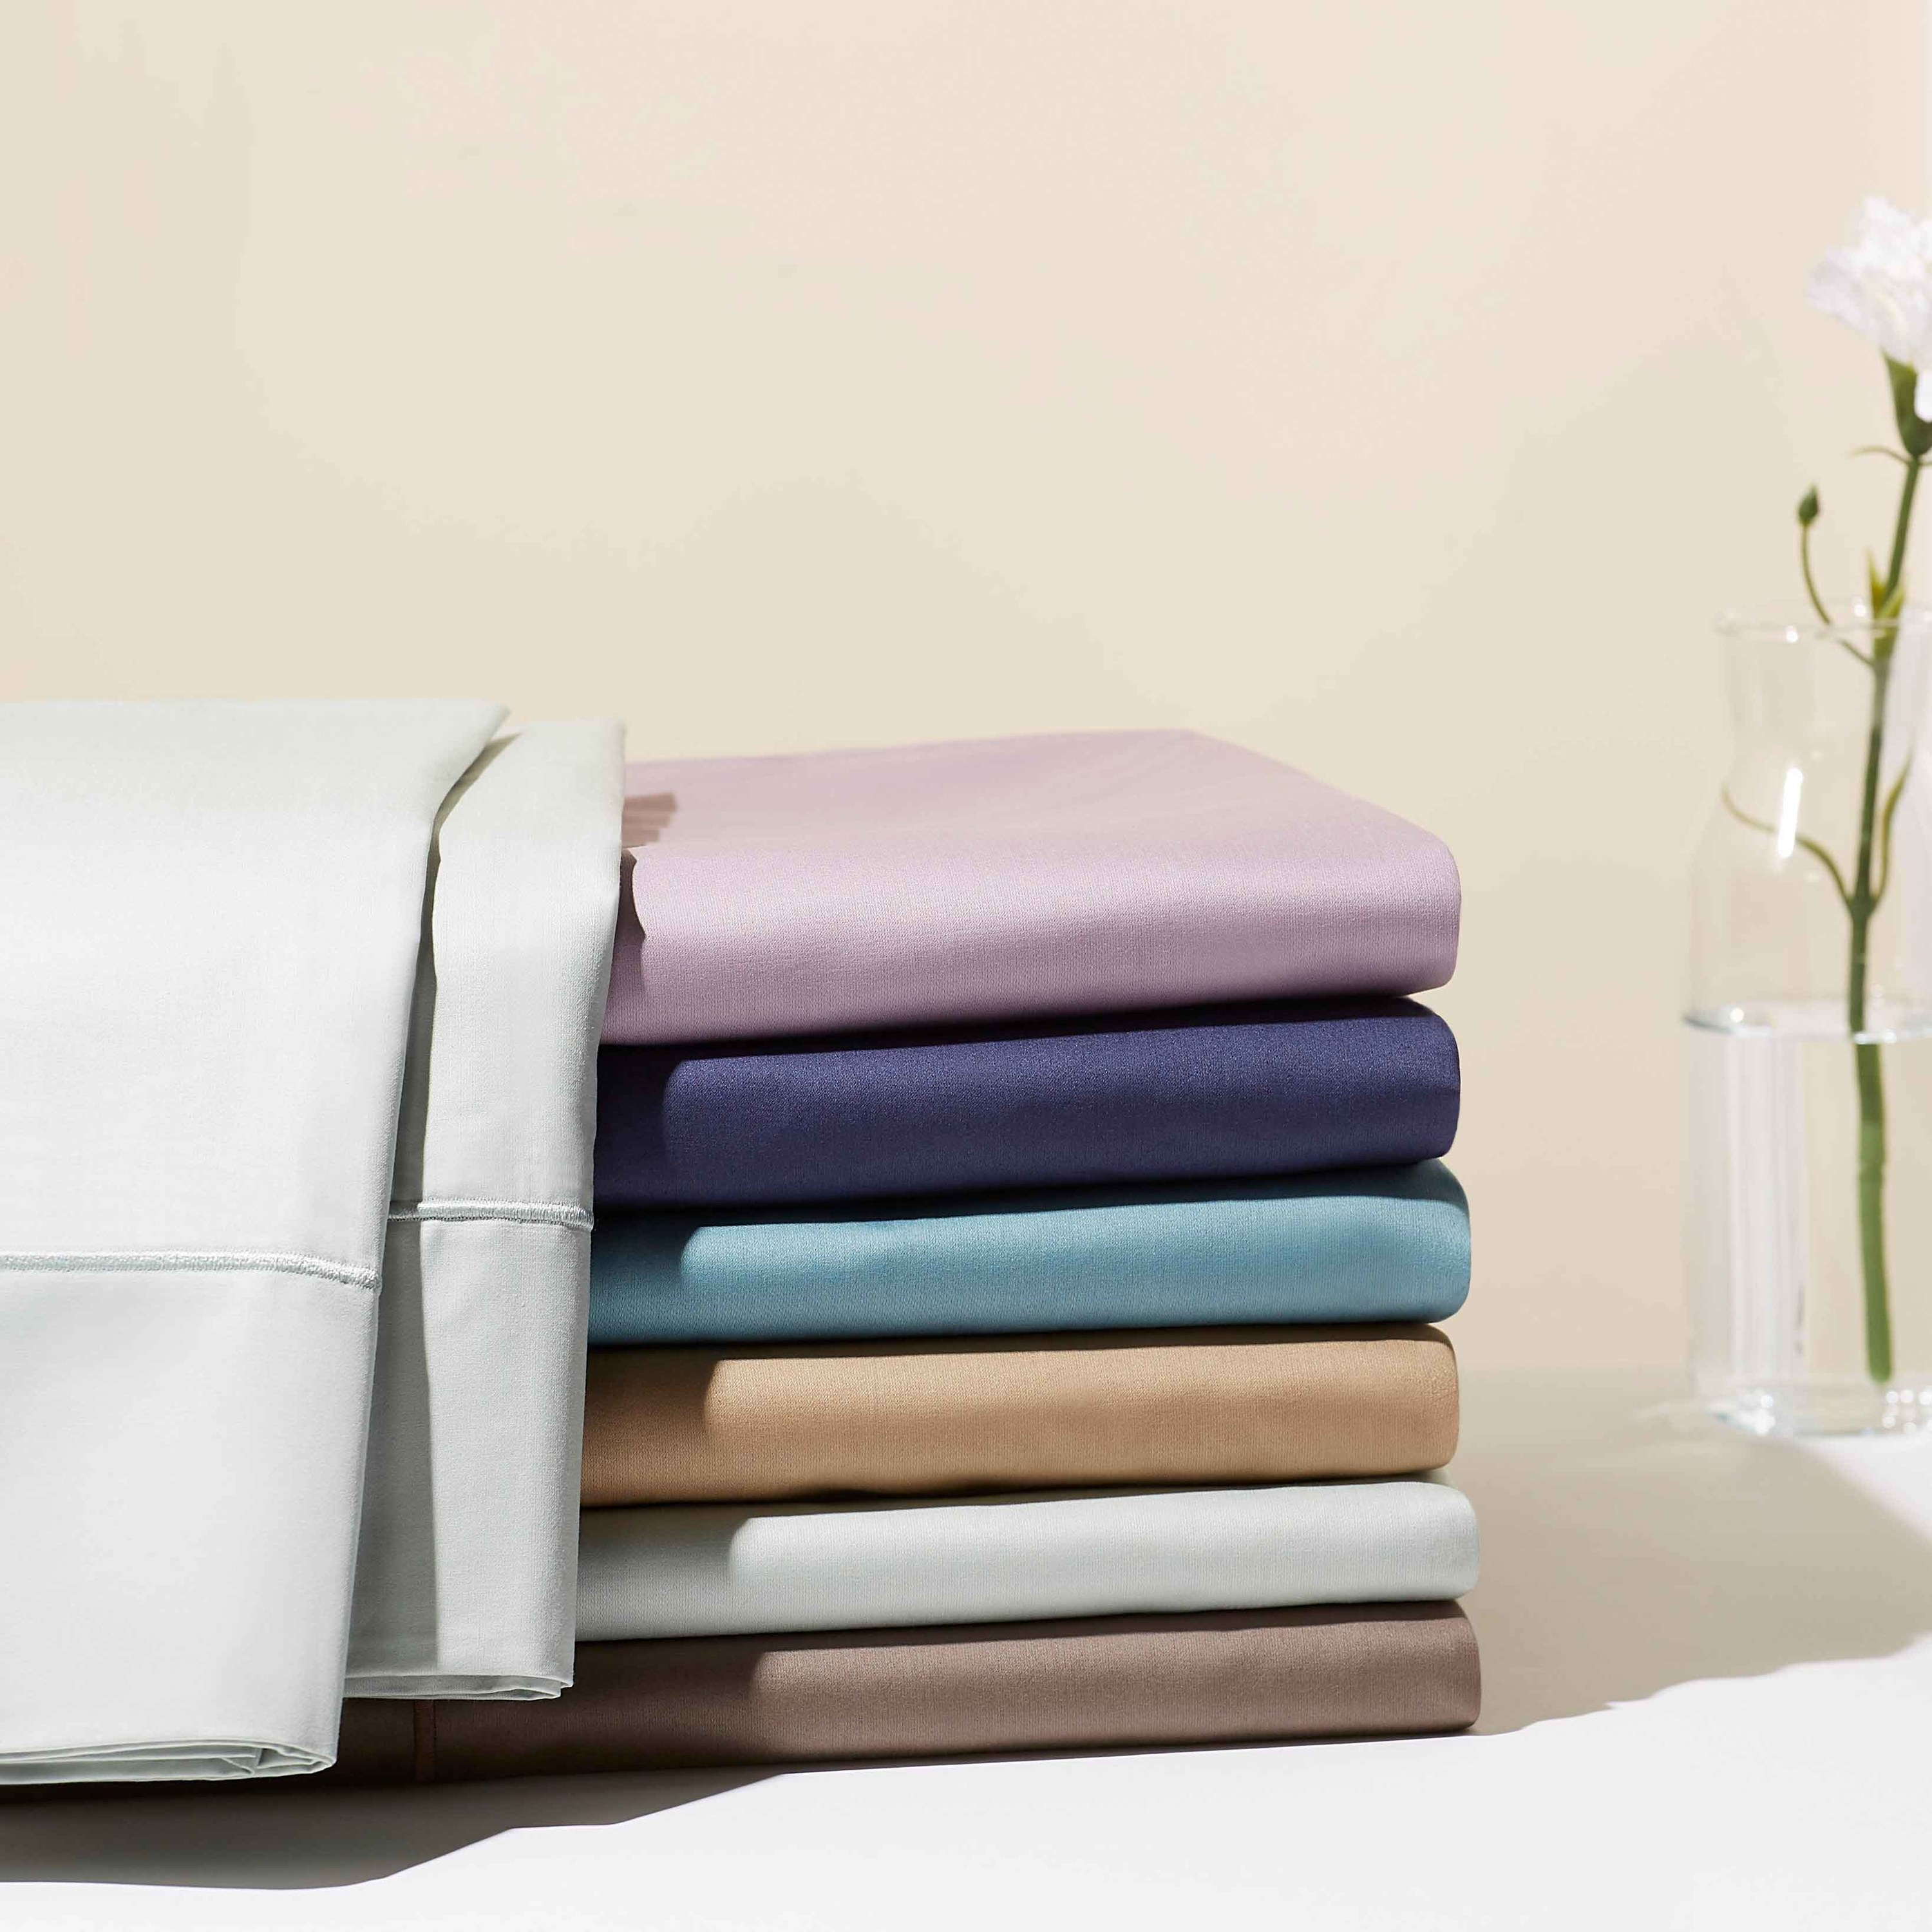 seven of the sheet sets in different colors